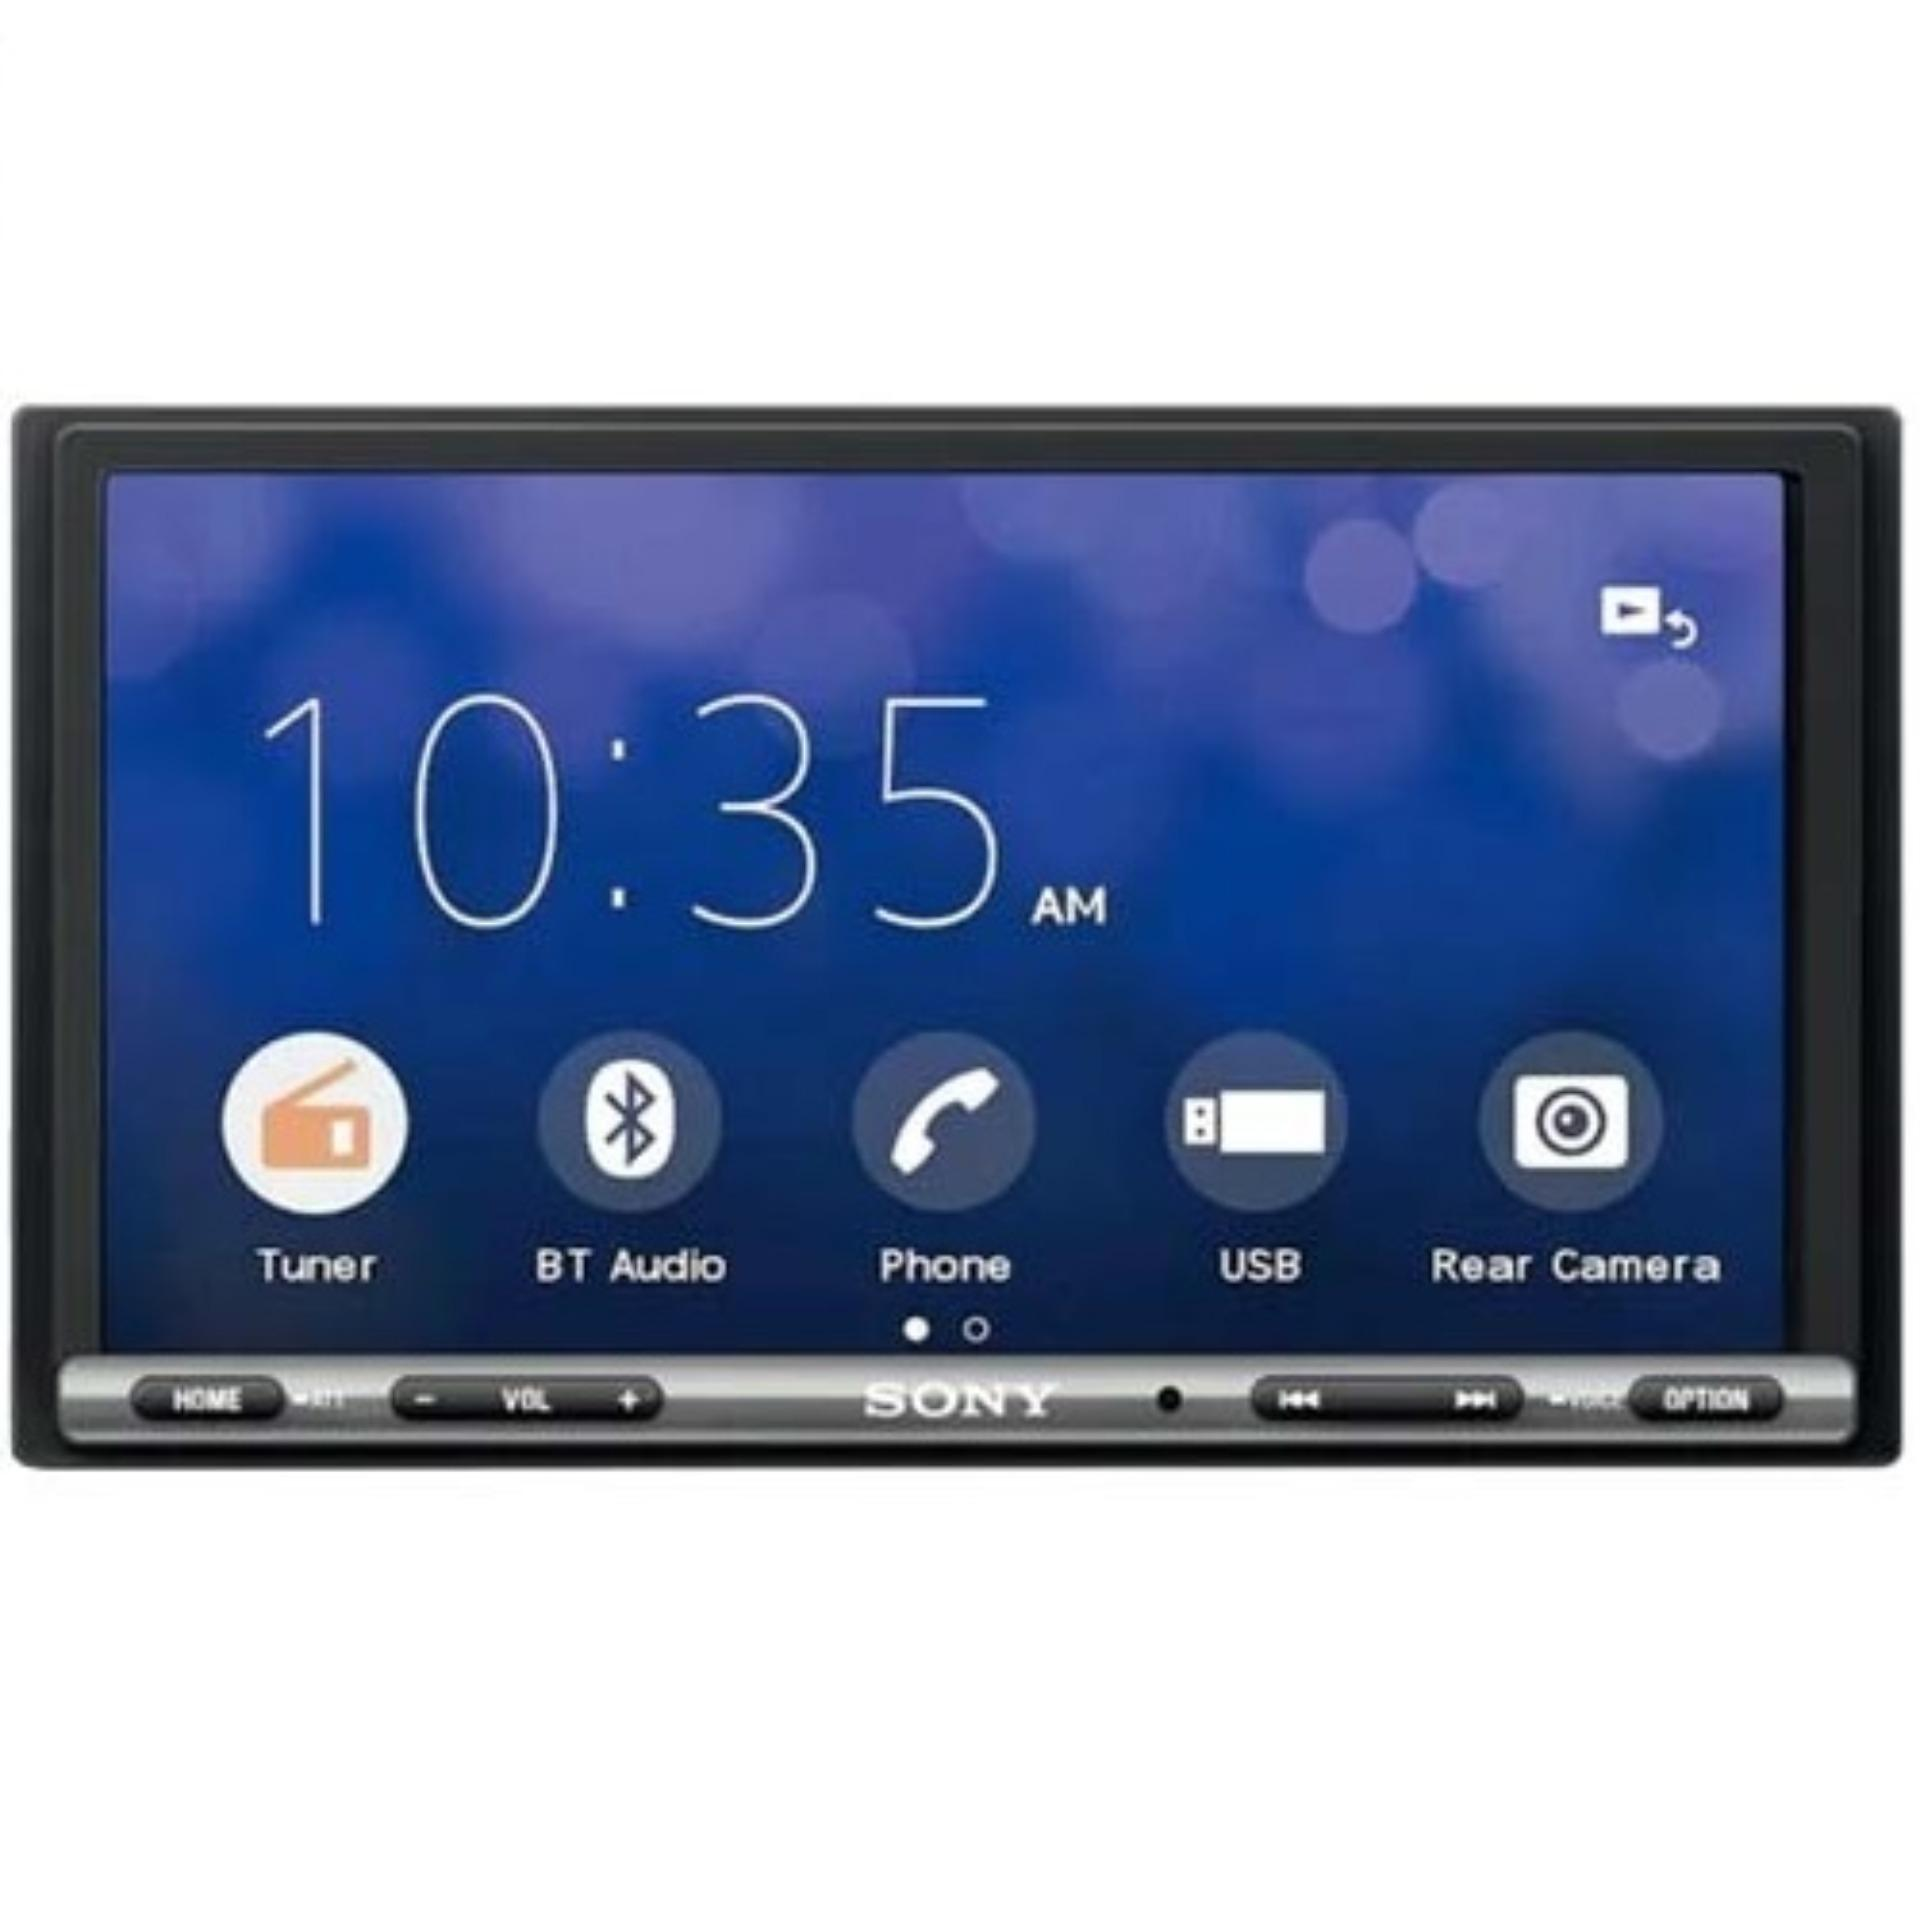 Sony Philippines - Sony Car Stereo for sale - prices & reviews | Lazada